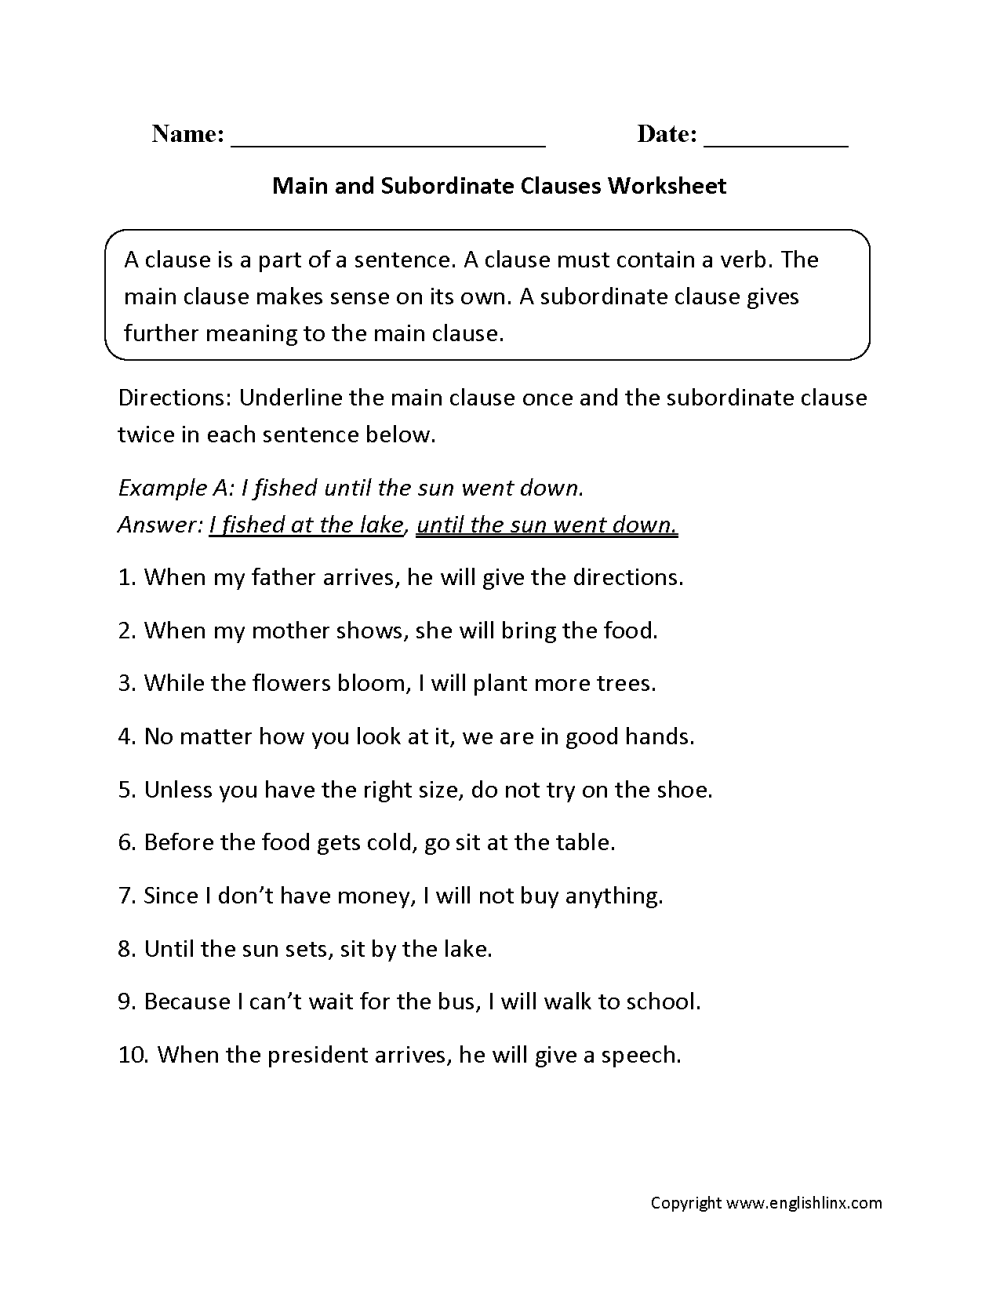 medium resolution of Clauses Worksheets   Main and Subordinate Clauses Worksheet